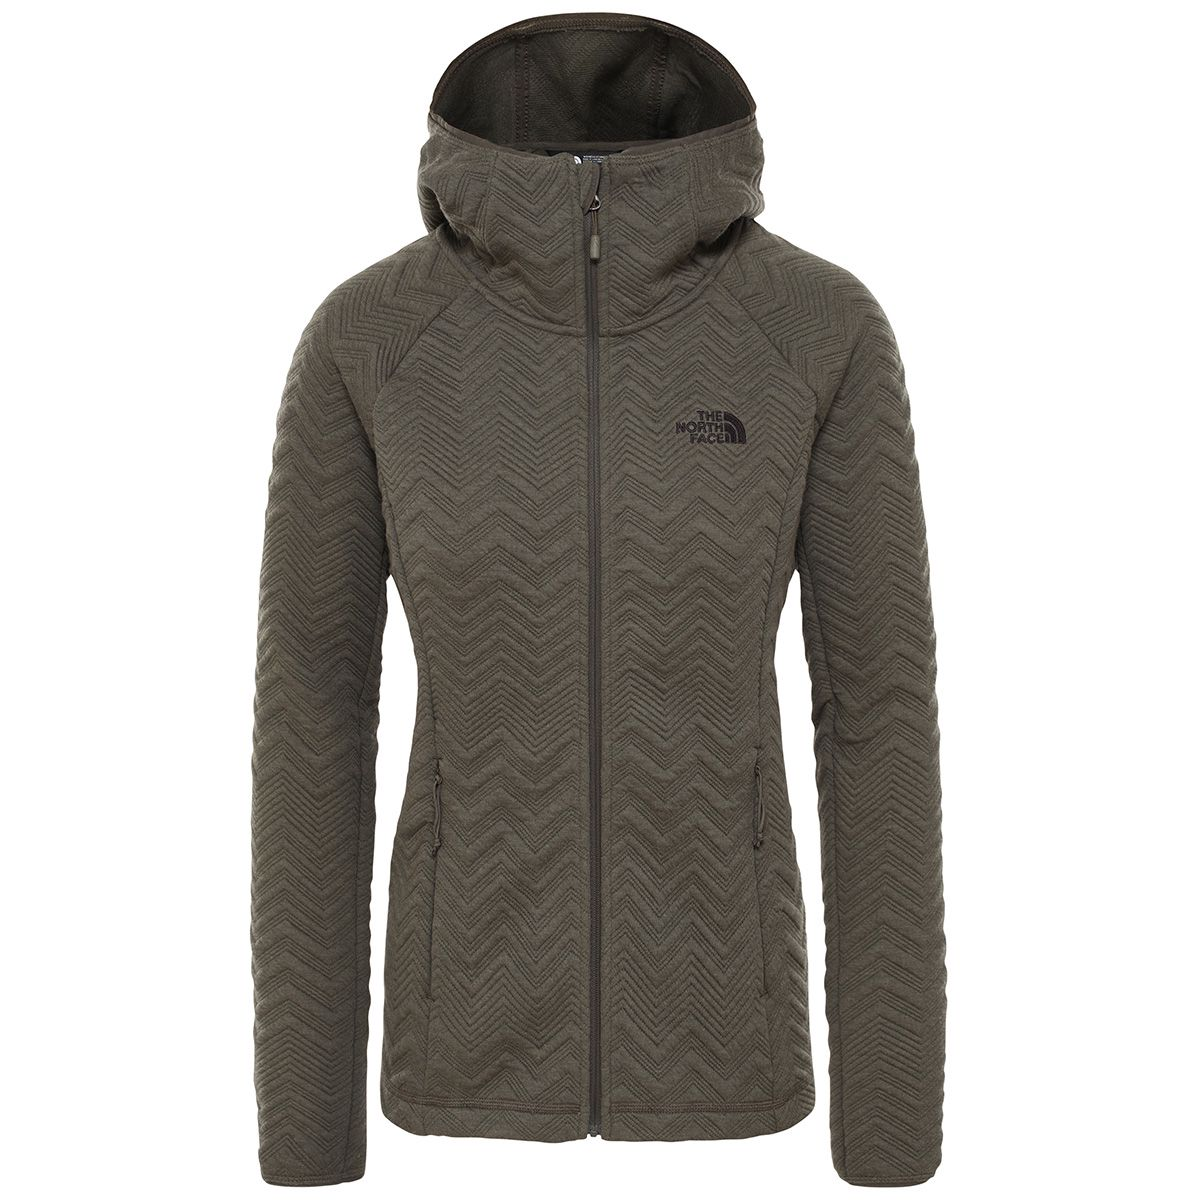 The North Face Damen Inux Tech Jacke (Größe XS, Oliv) | Isolationsjacken > Damen